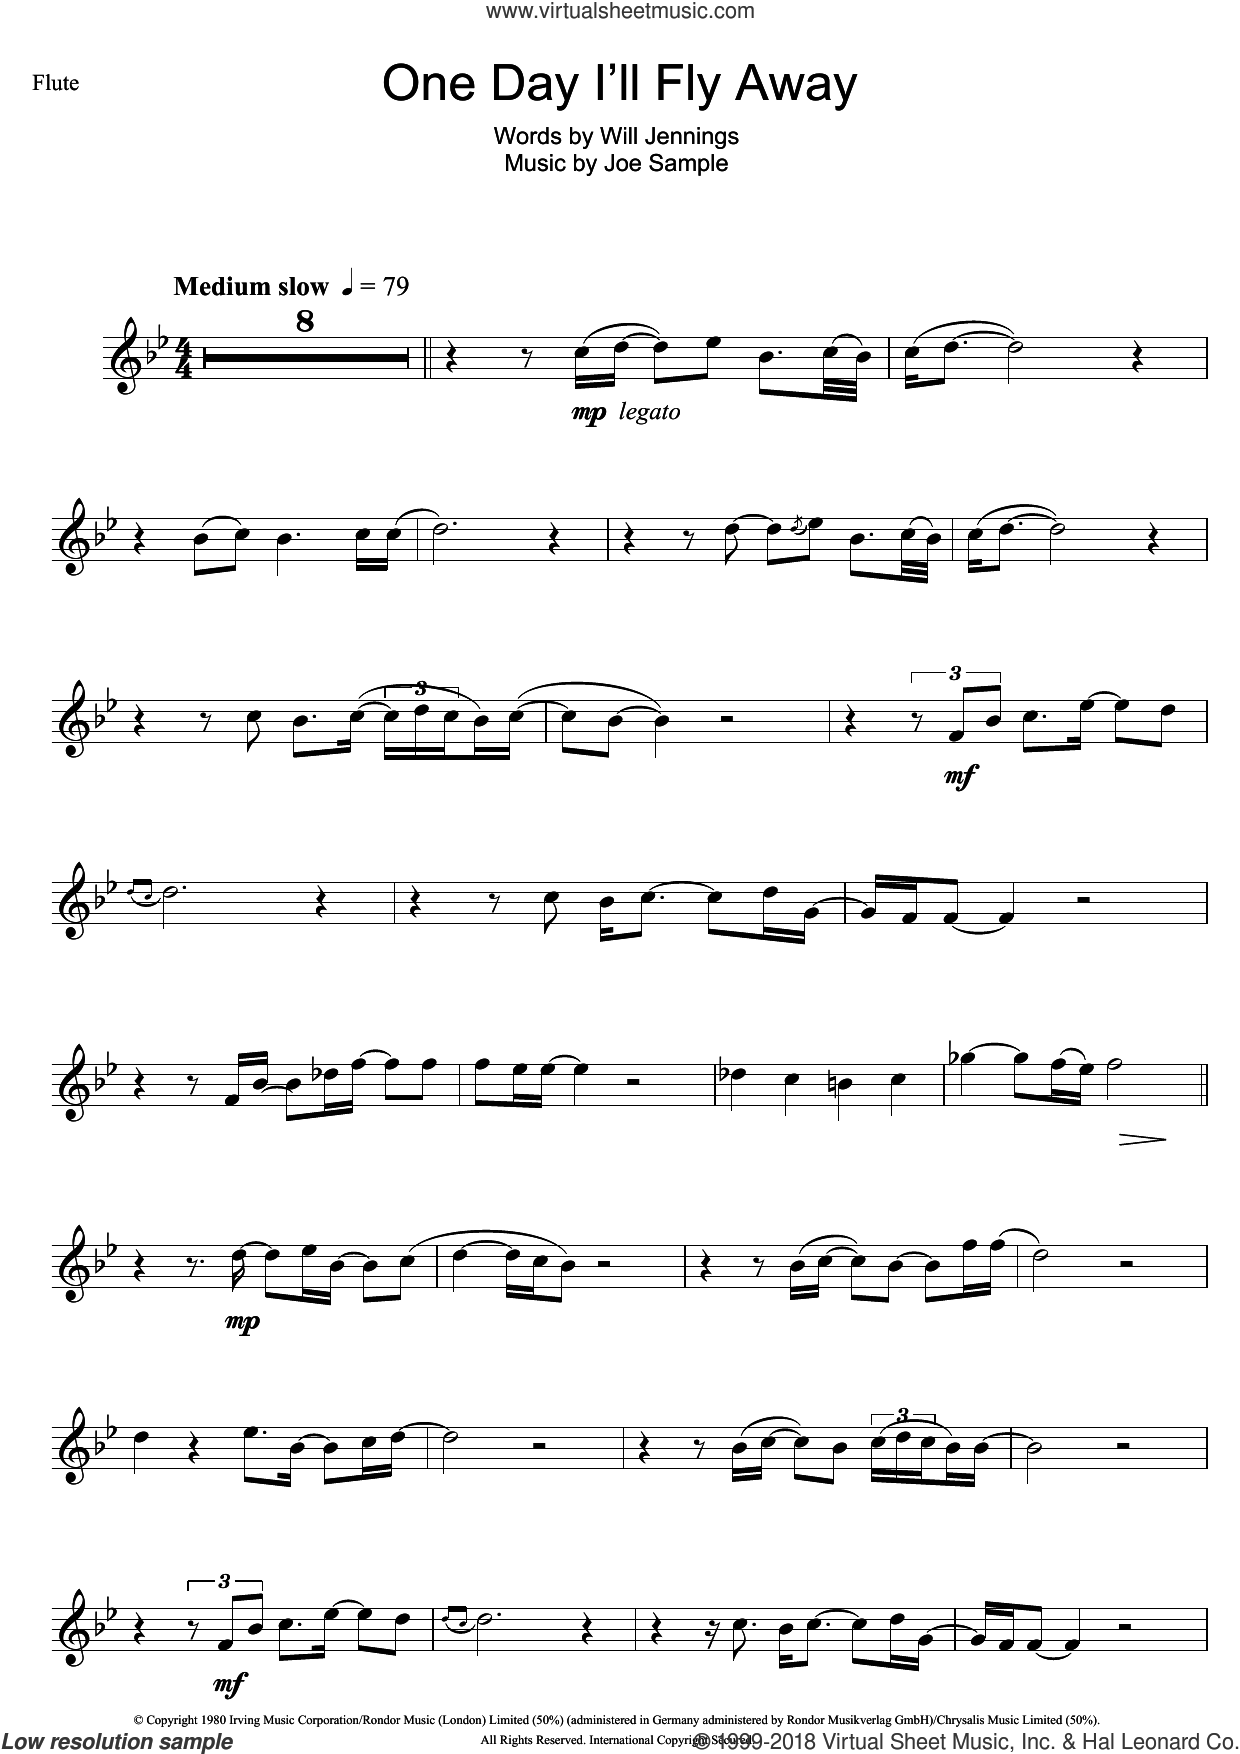 One Day I'll Fly Away sheet music for flute solo by Will Jennings and Joe Sample. Score Image Preview.